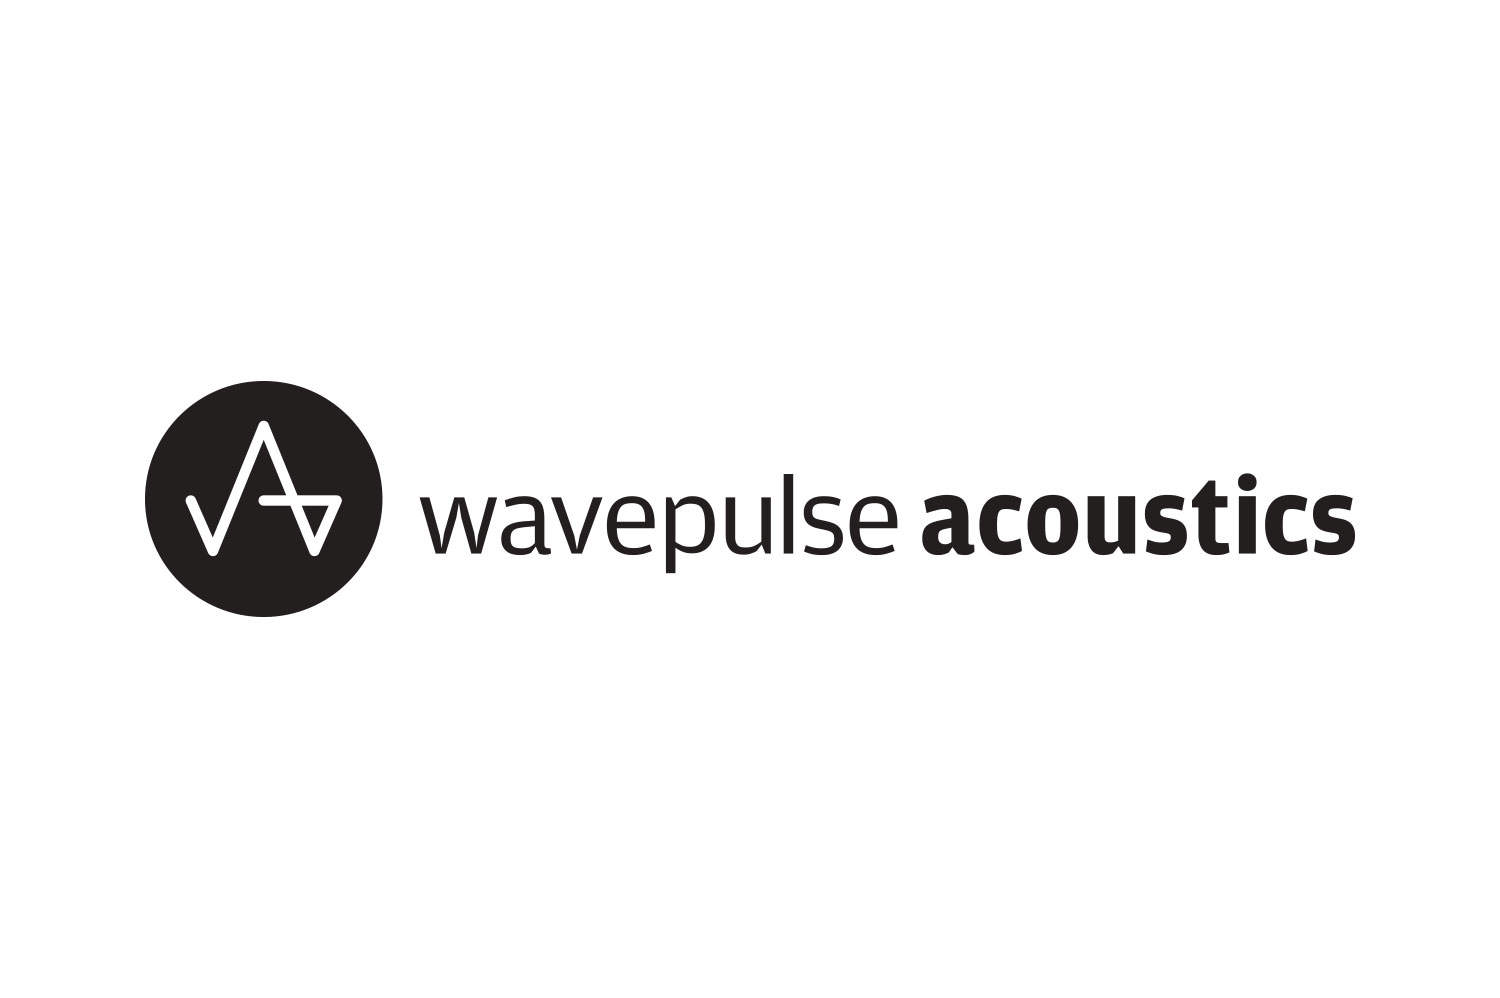 Wavepulse acoustics logo designed by The Logo Smith